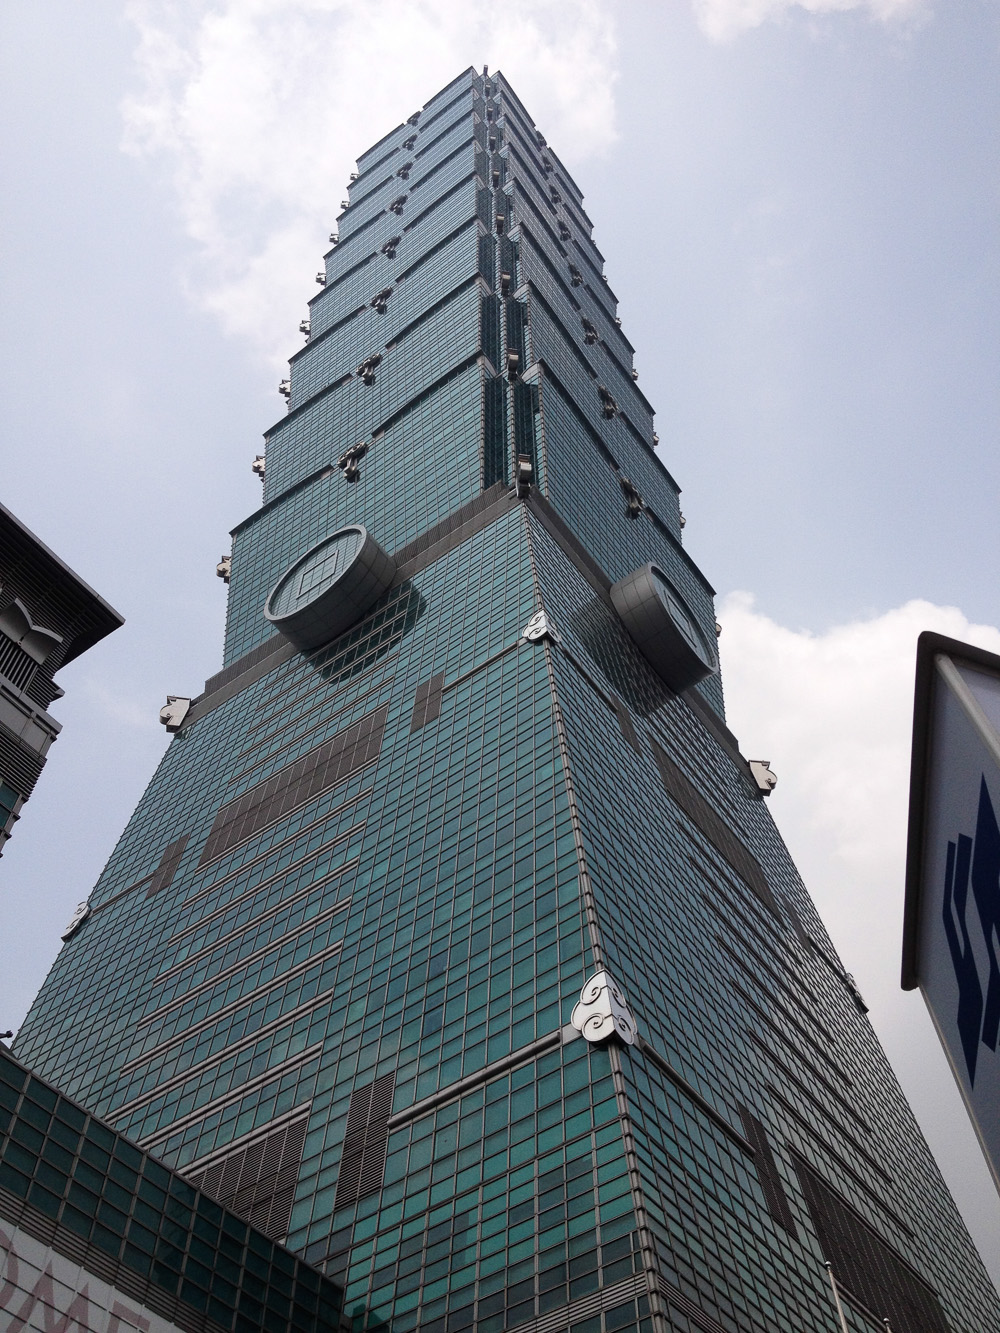 Taipei 101, the fifth tallest building in the world.